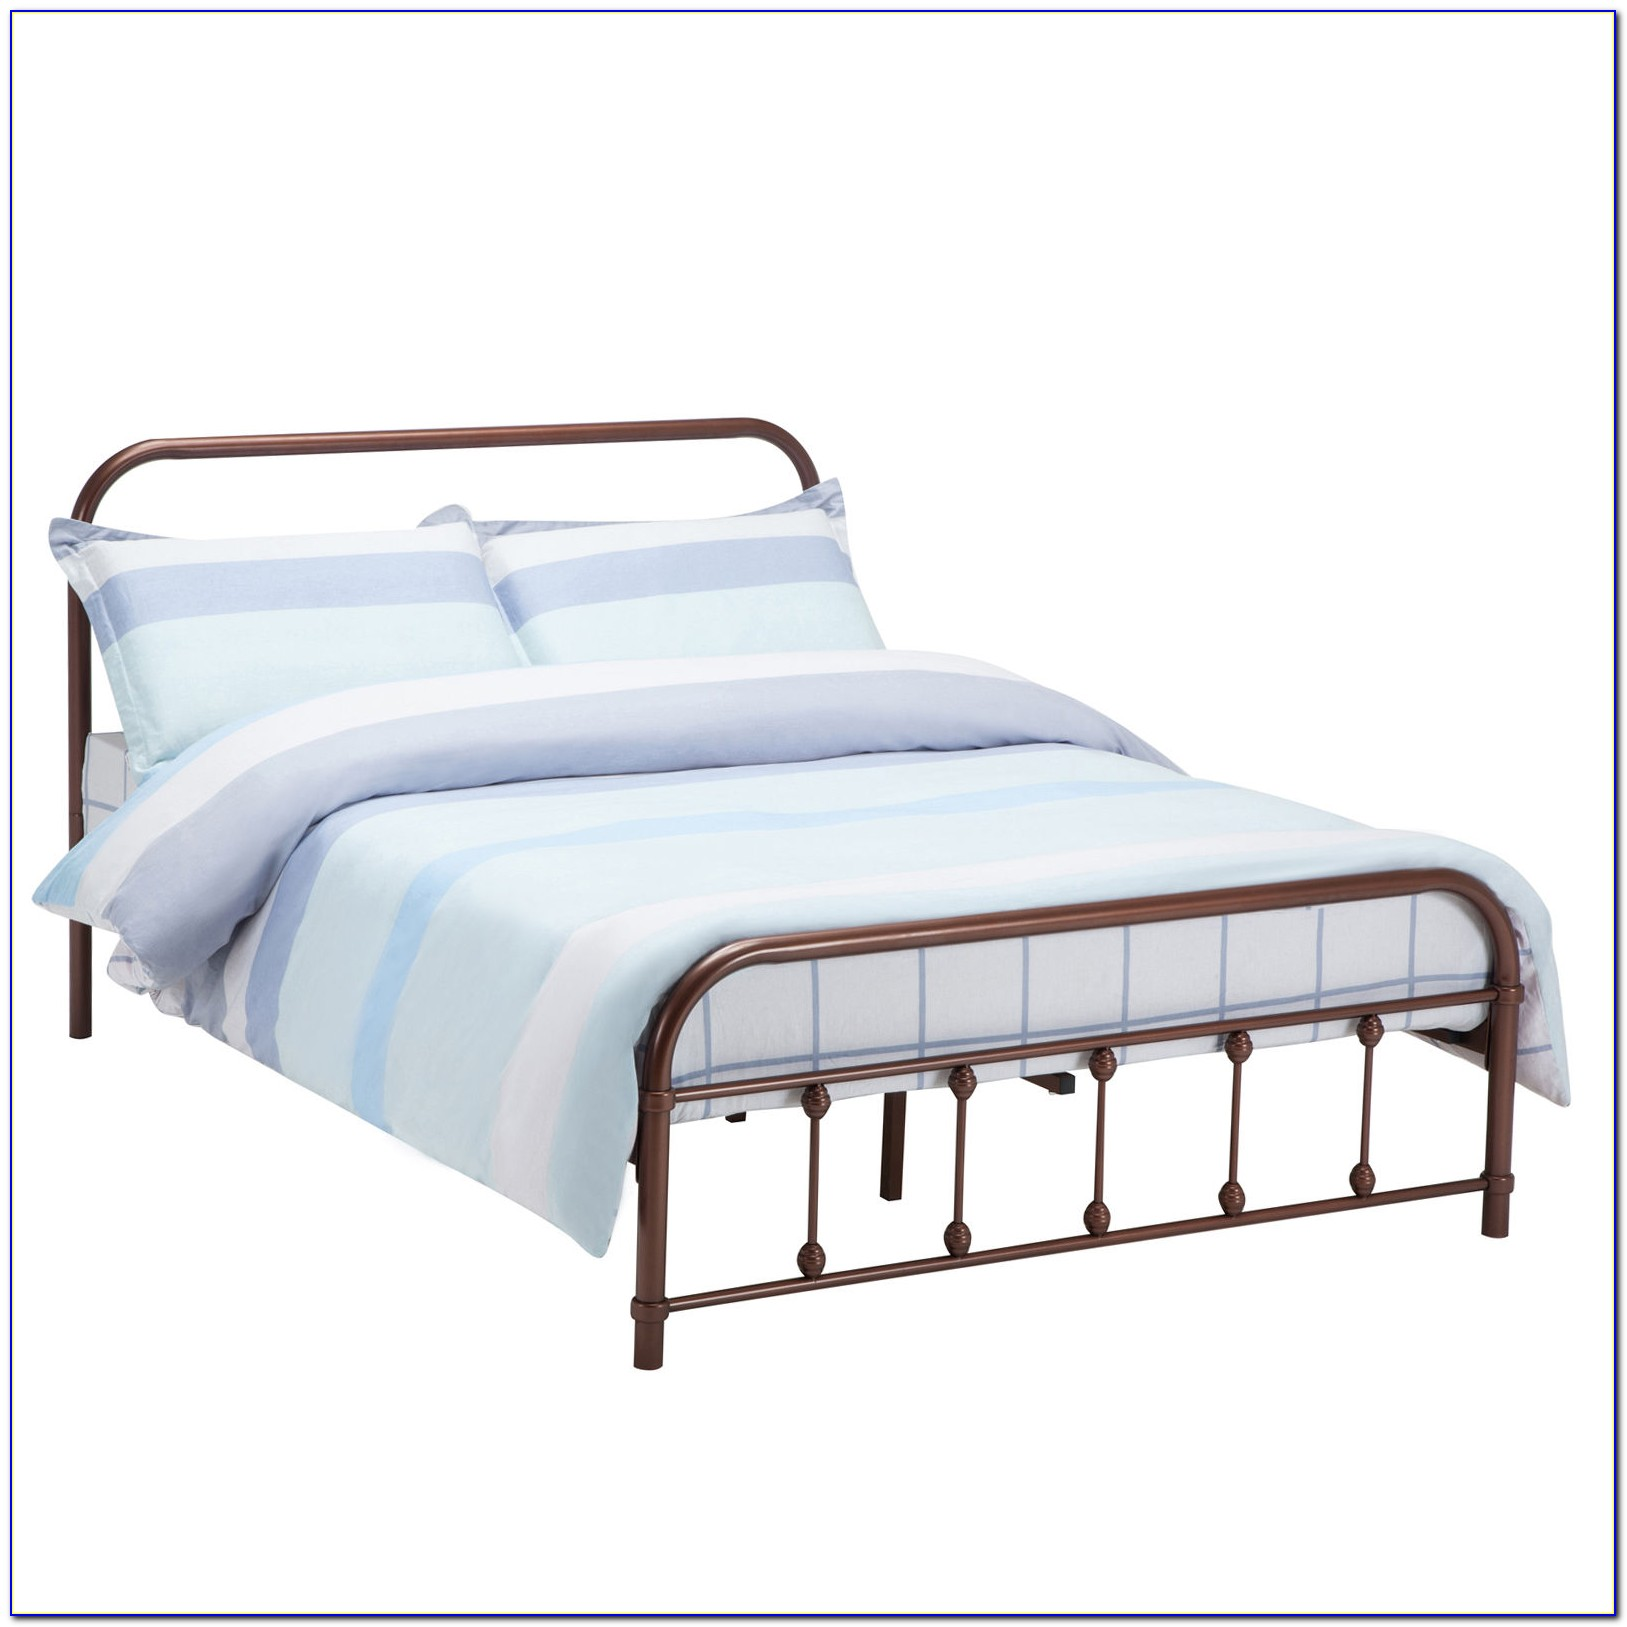 Metal Headboard And Footboard King Size